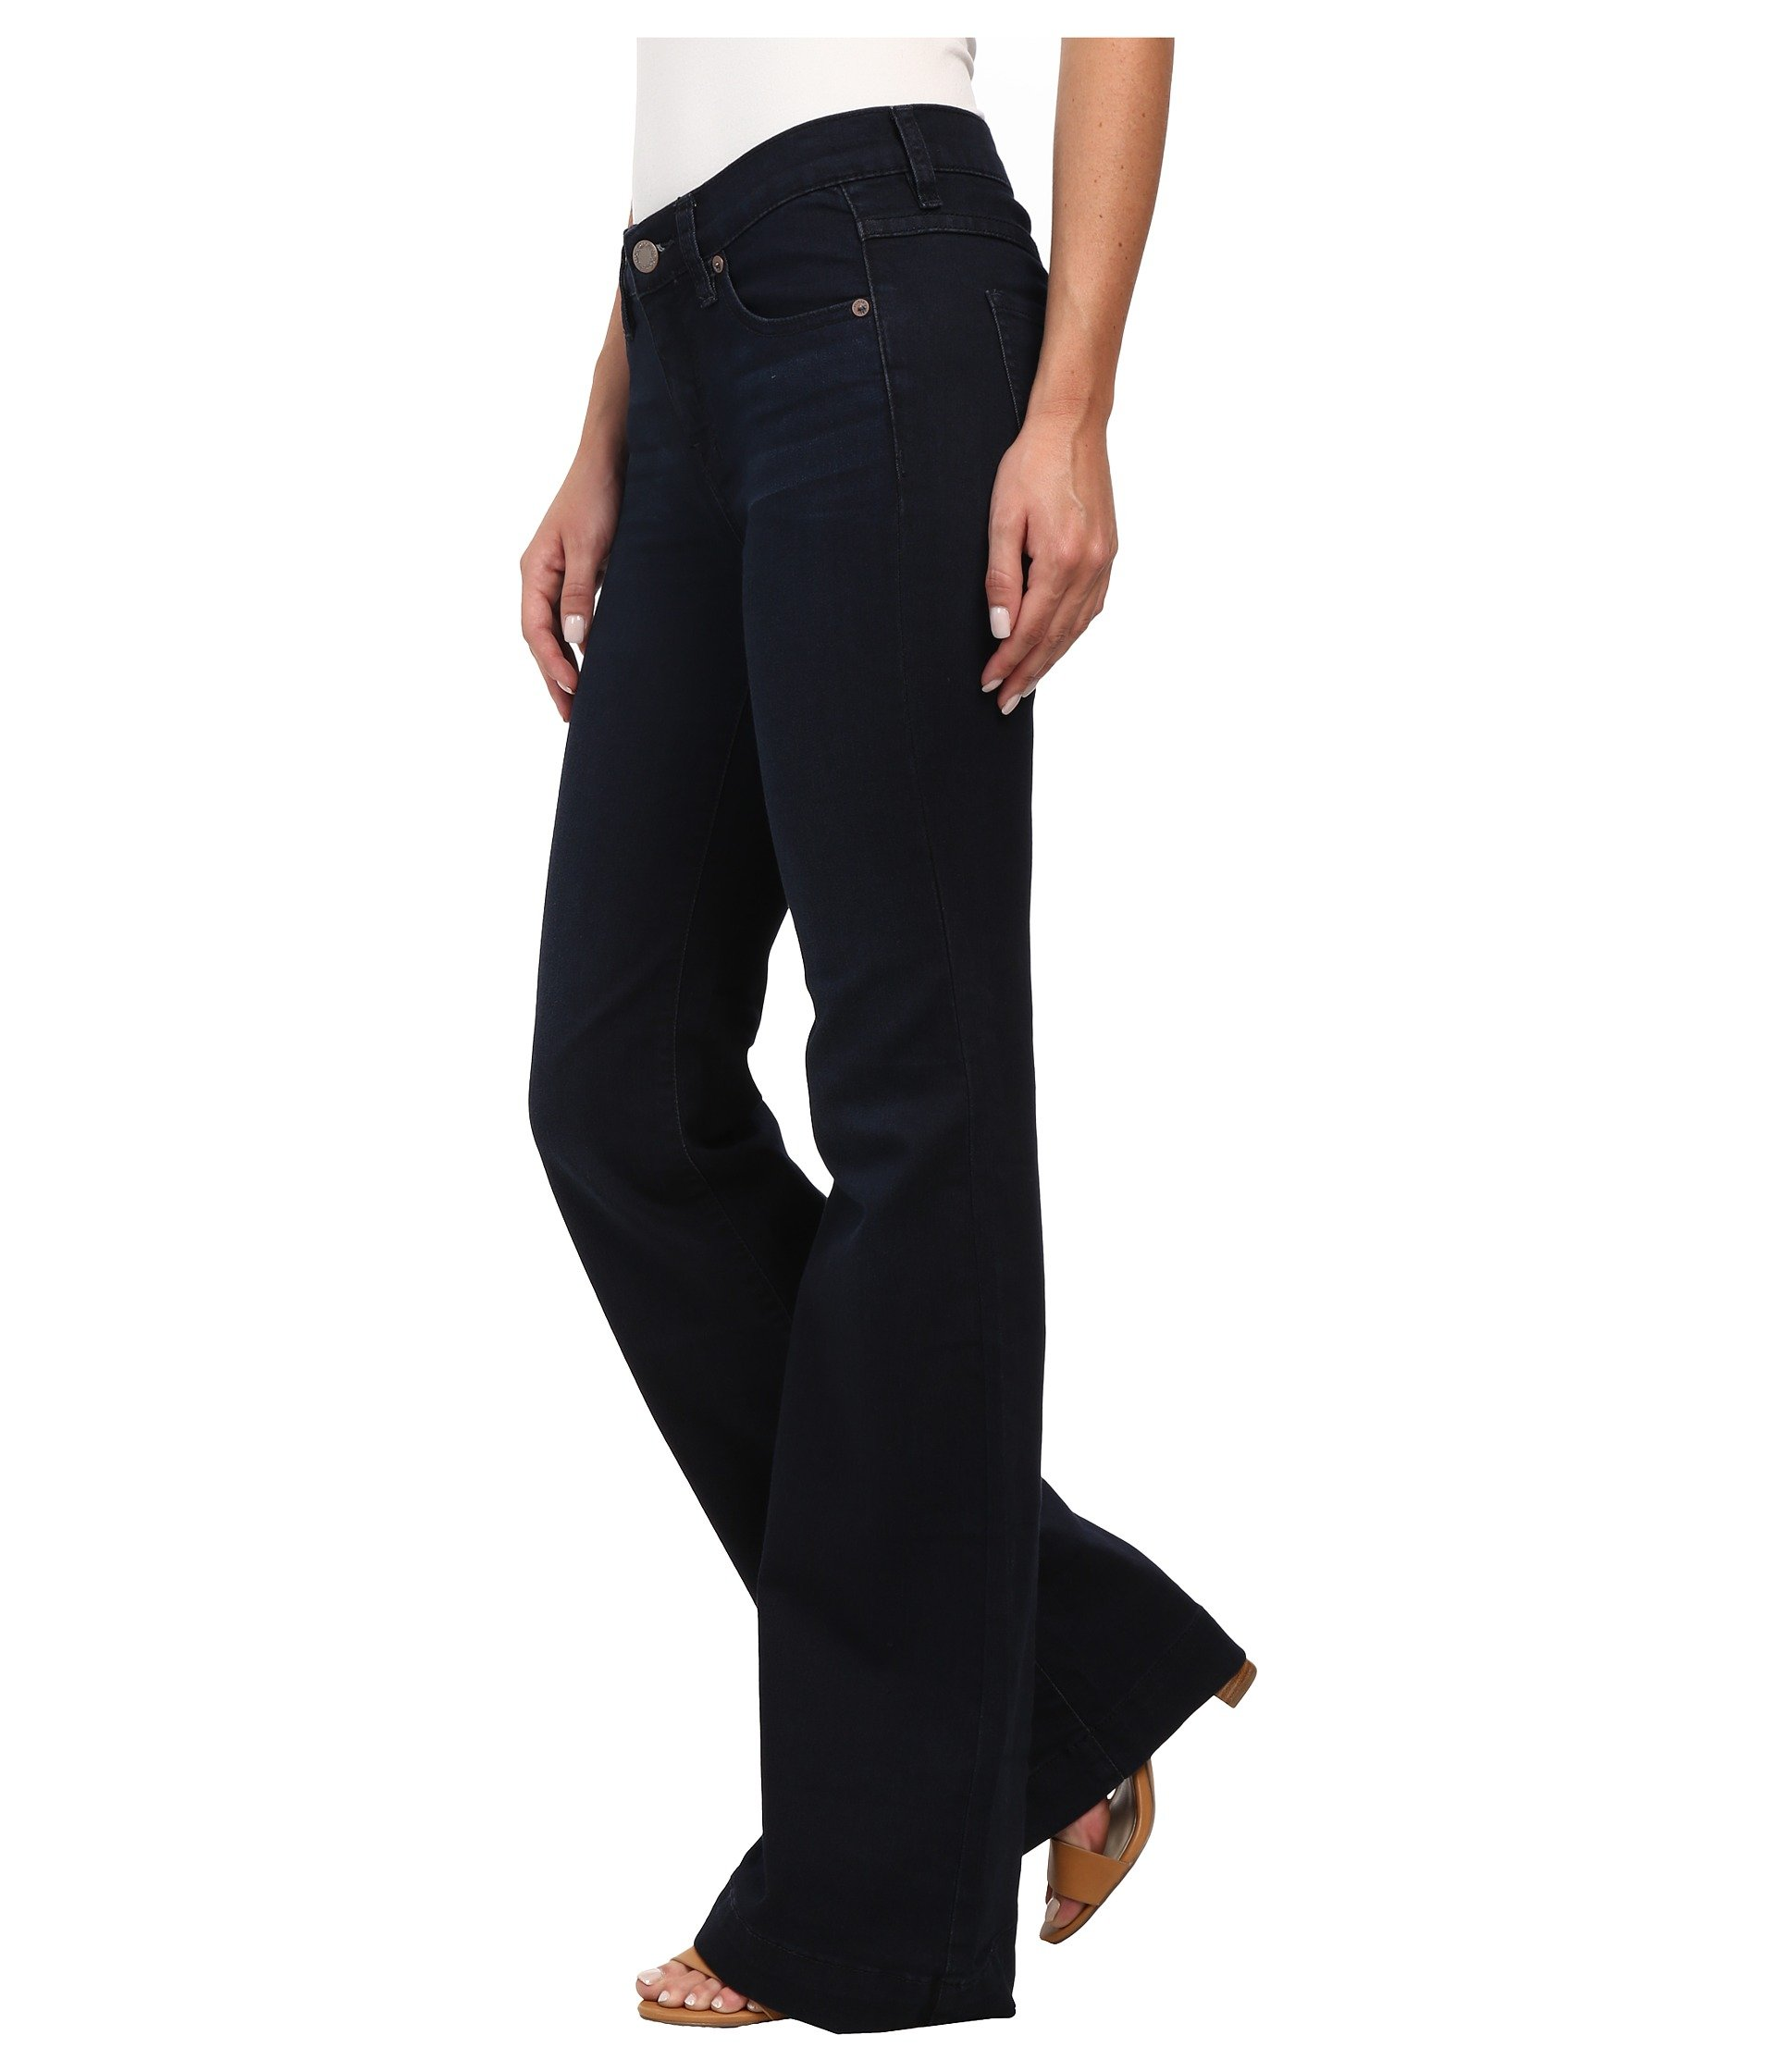 Free People Womens Denim Flare Flare Jeans Blue 24 by Free People (Image #3)